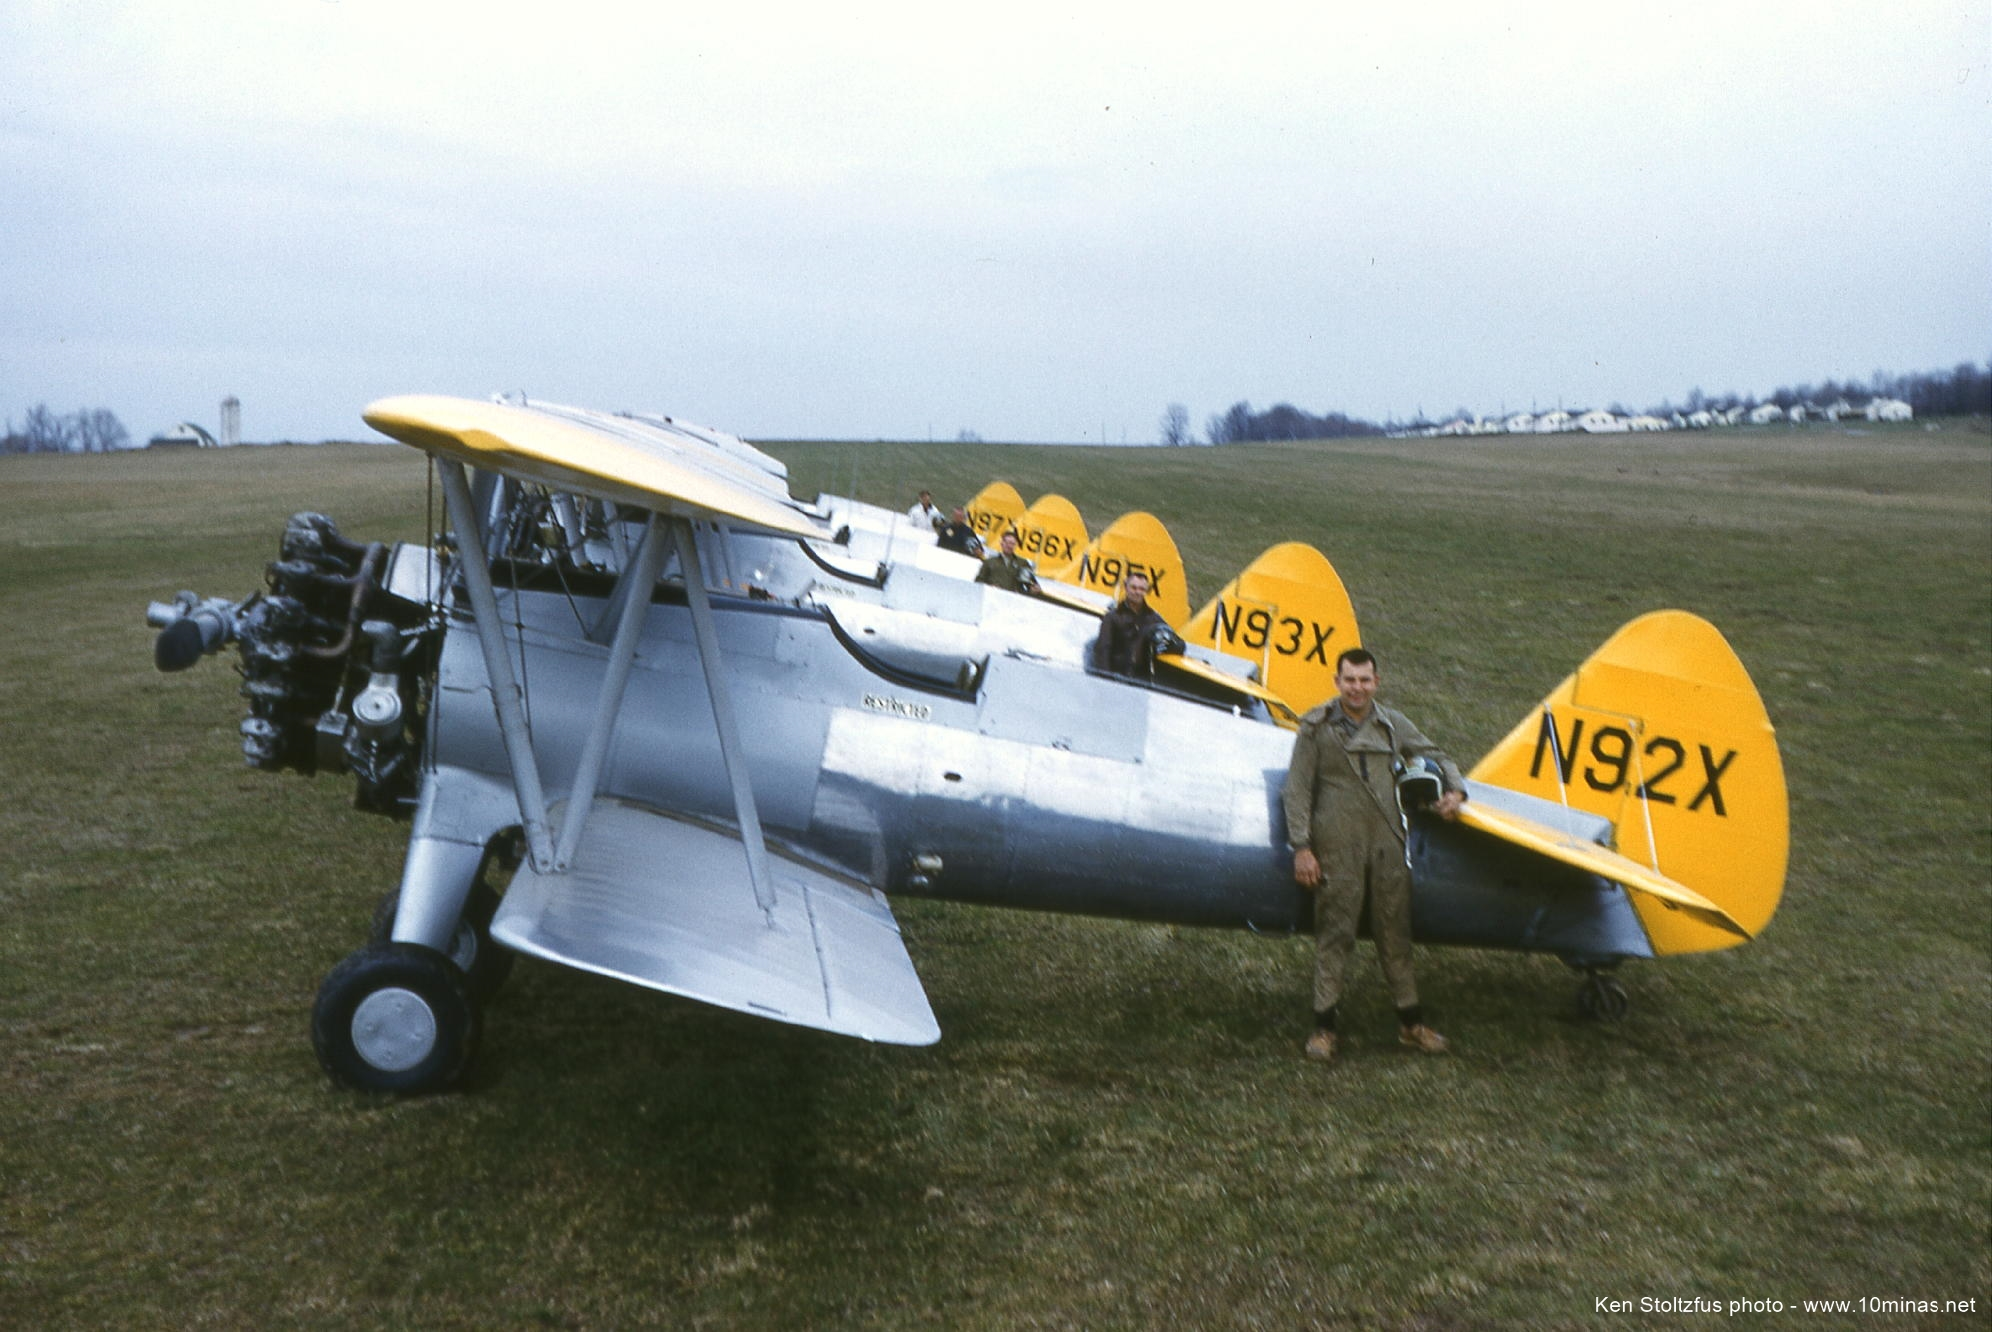 Stearman_sprayer_air-tankers_Stoltzfus